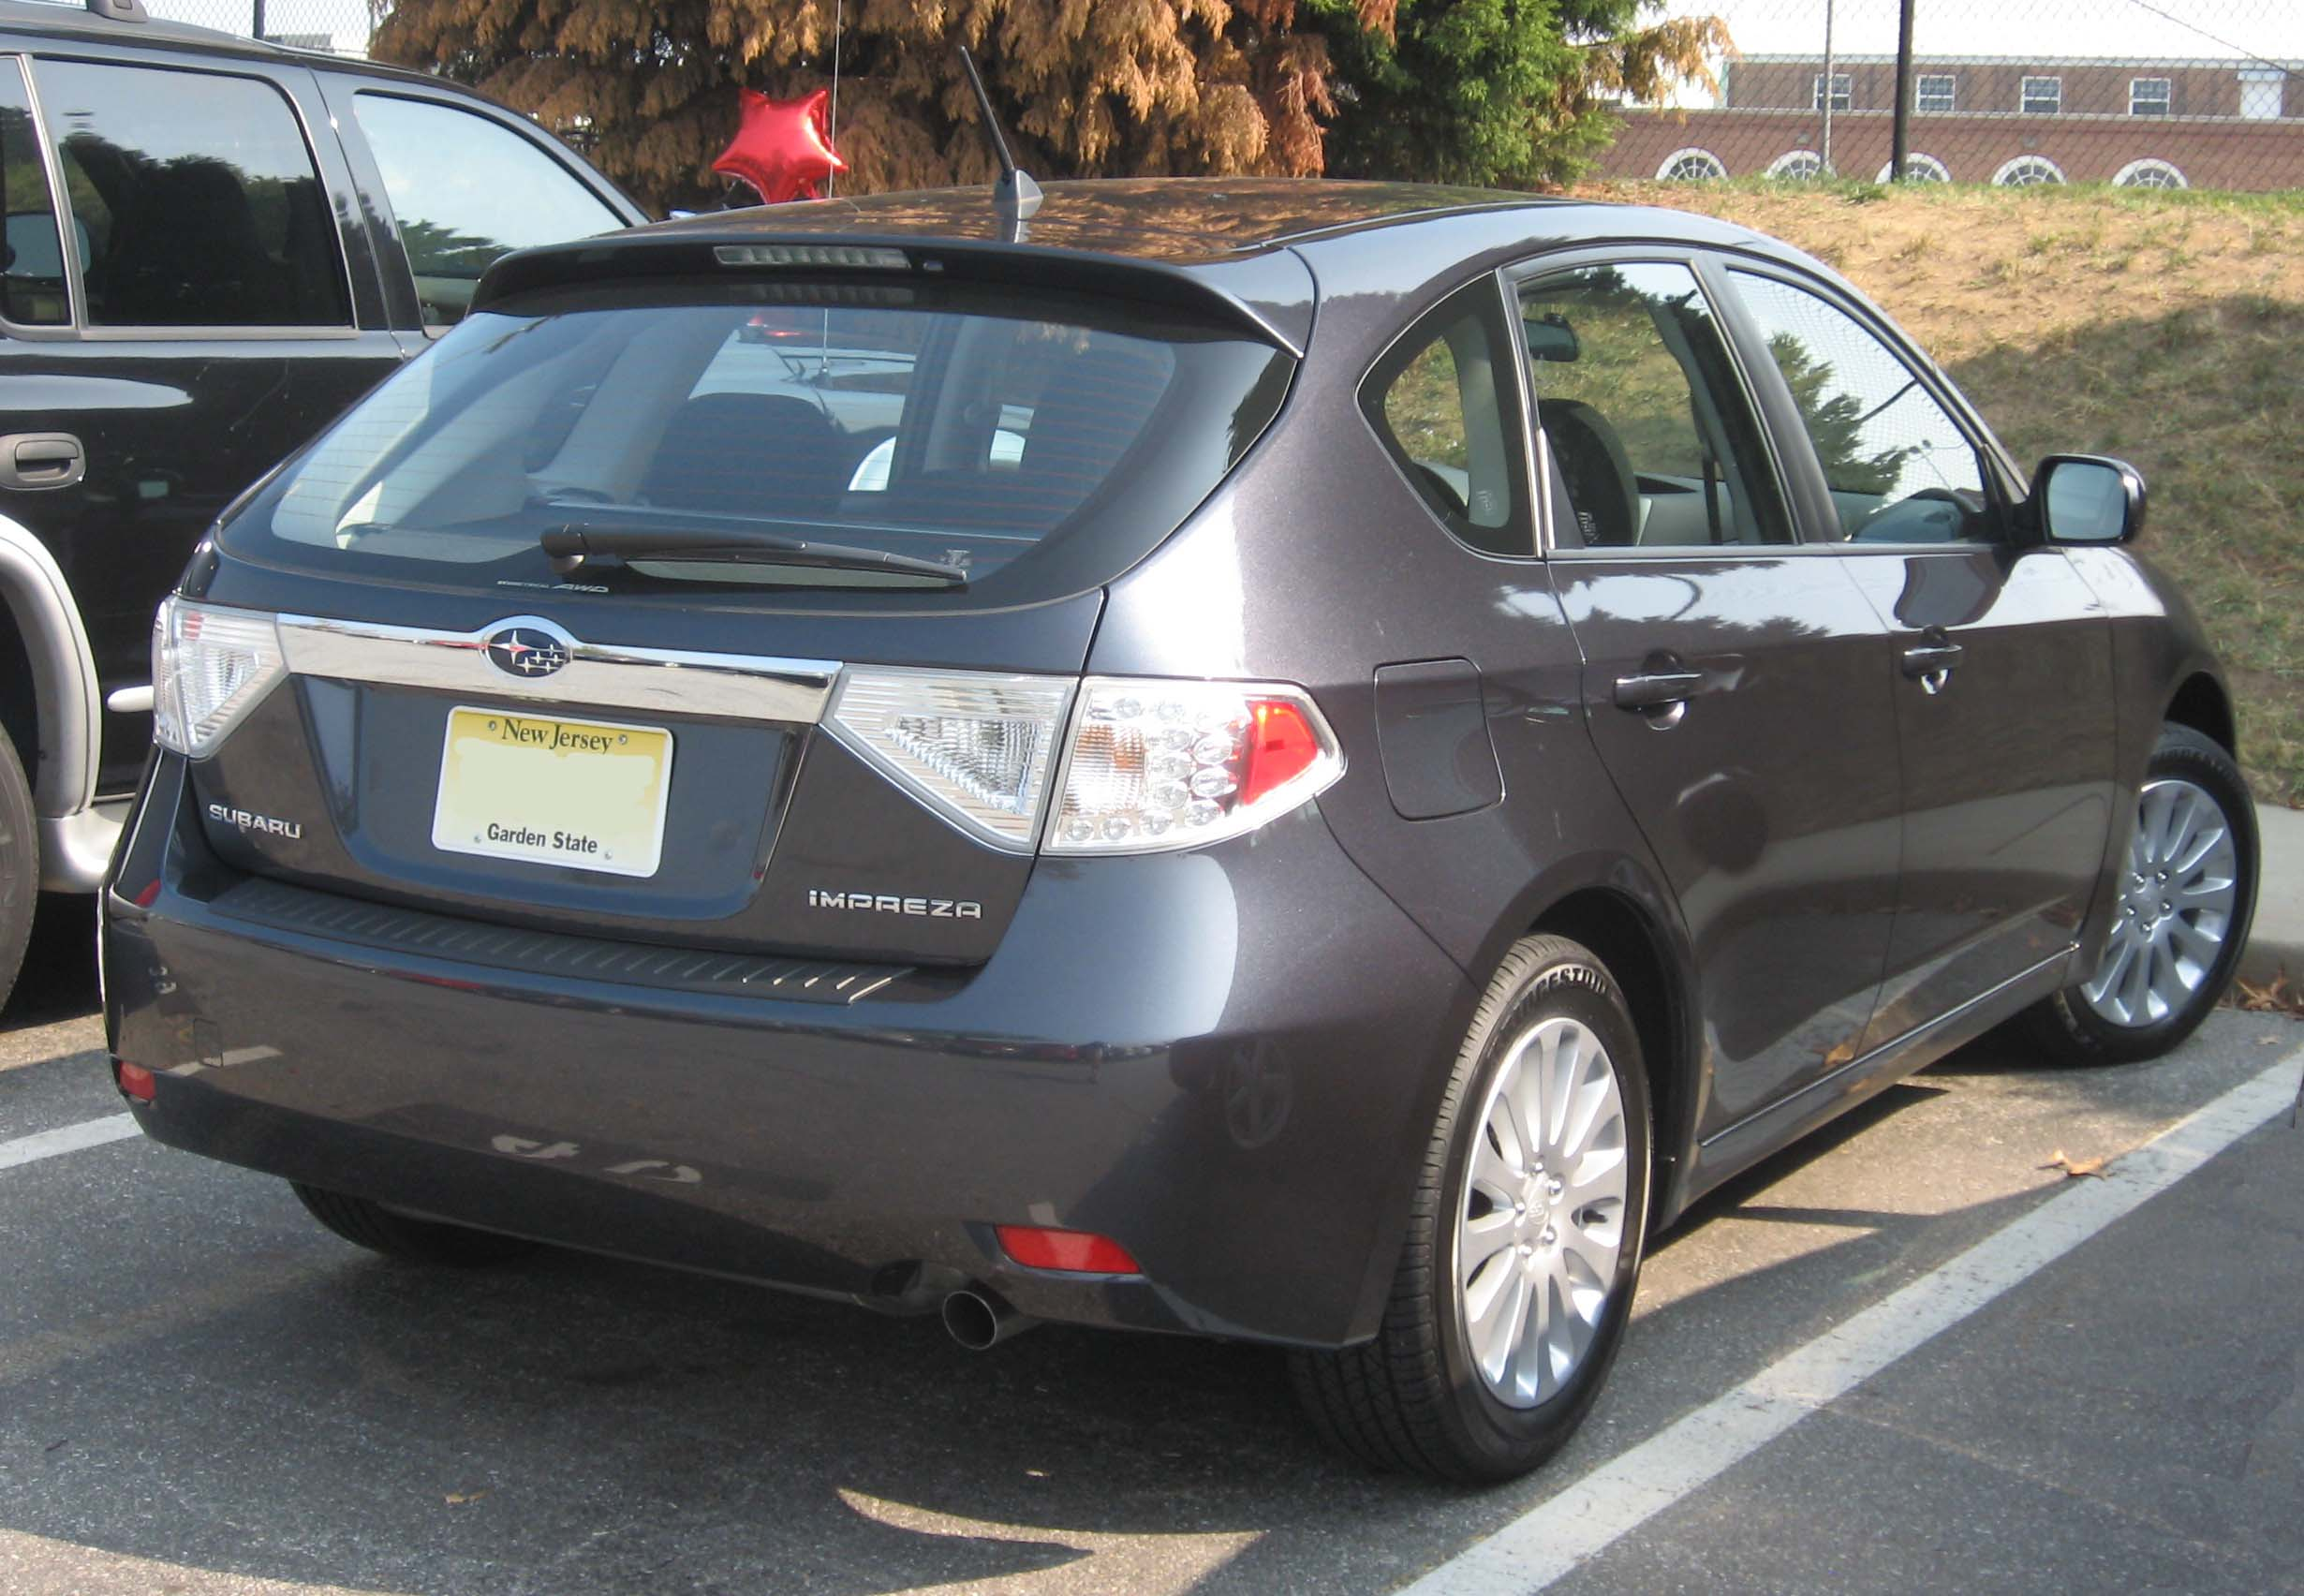 file:08-subaru-impreza-hatch - wikimedia commons